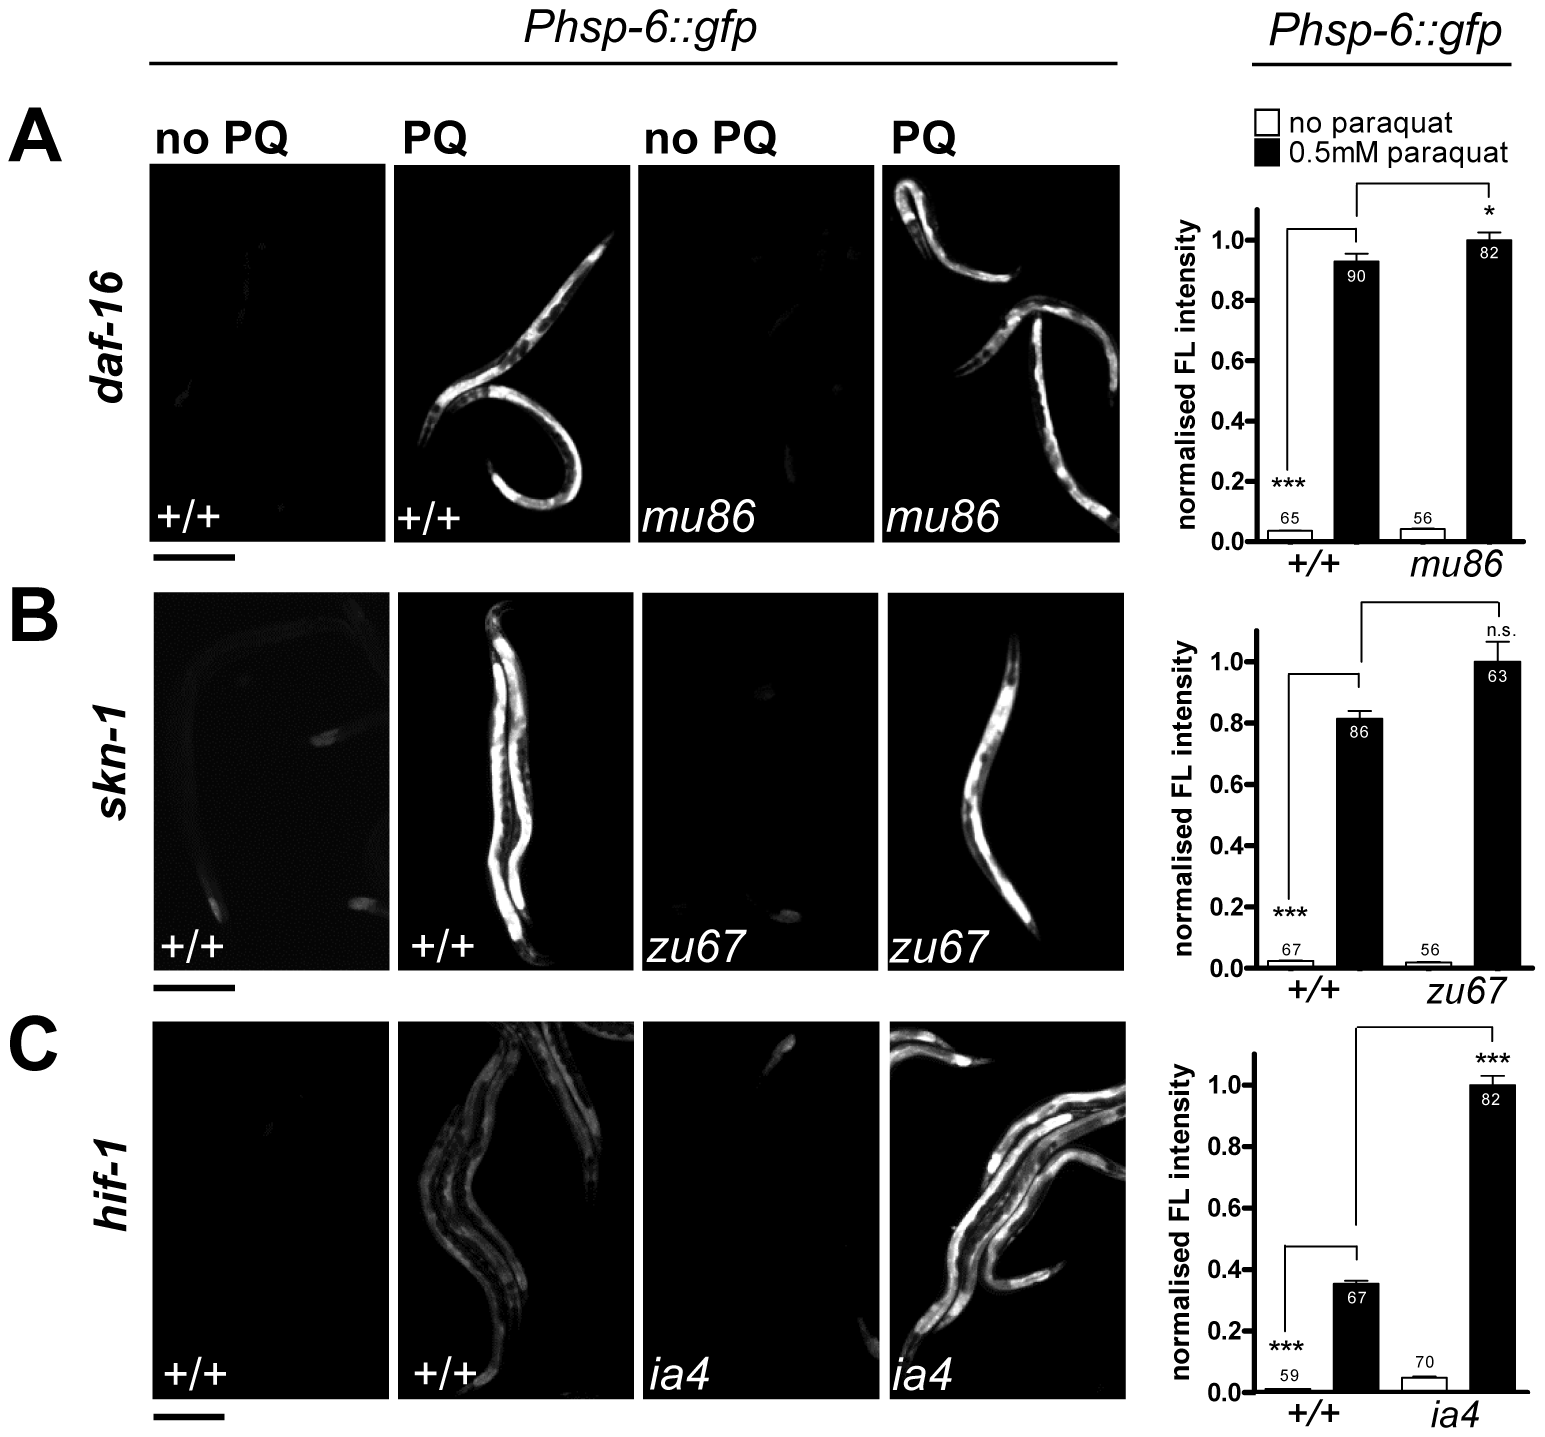 The <i>hsp-6</i> response to paraquat does not require the stress-inducible transcription factors SKN-1, DAF-16, or HIF-1.